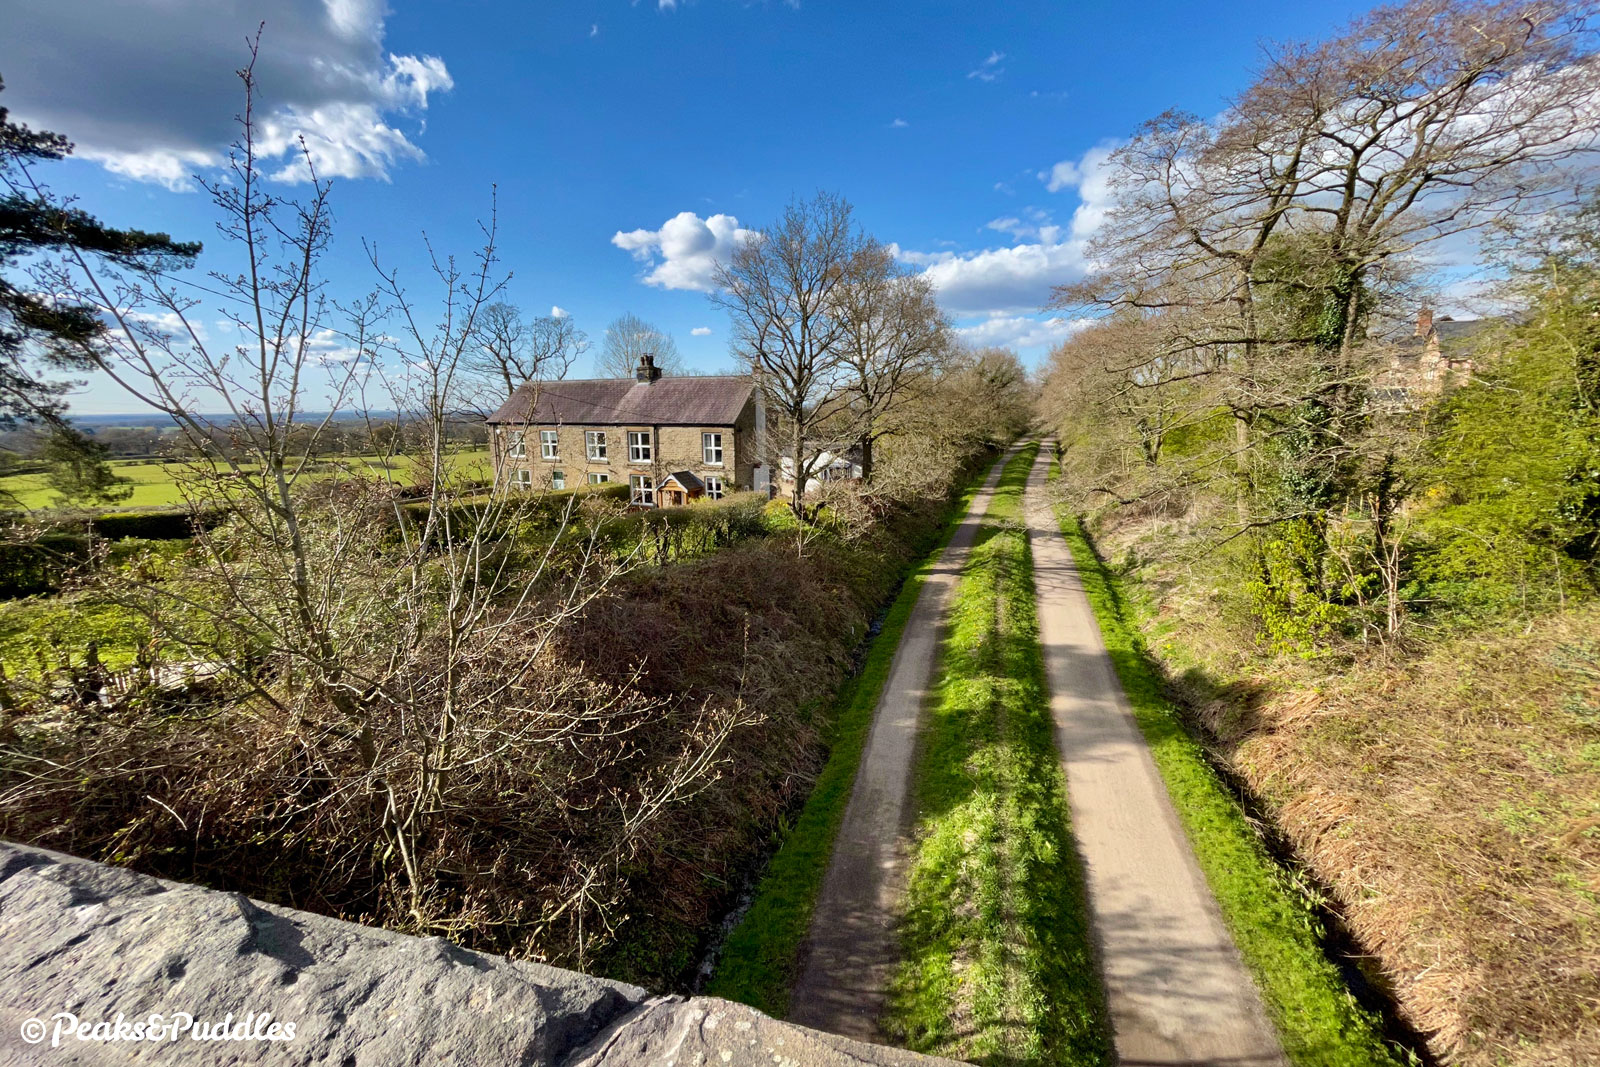 From Holehouse Lane above Middlewood Way, you can appreciate how the trail cuts across a ridge parallel with the edge of the Peak District and the Cheshire plain.